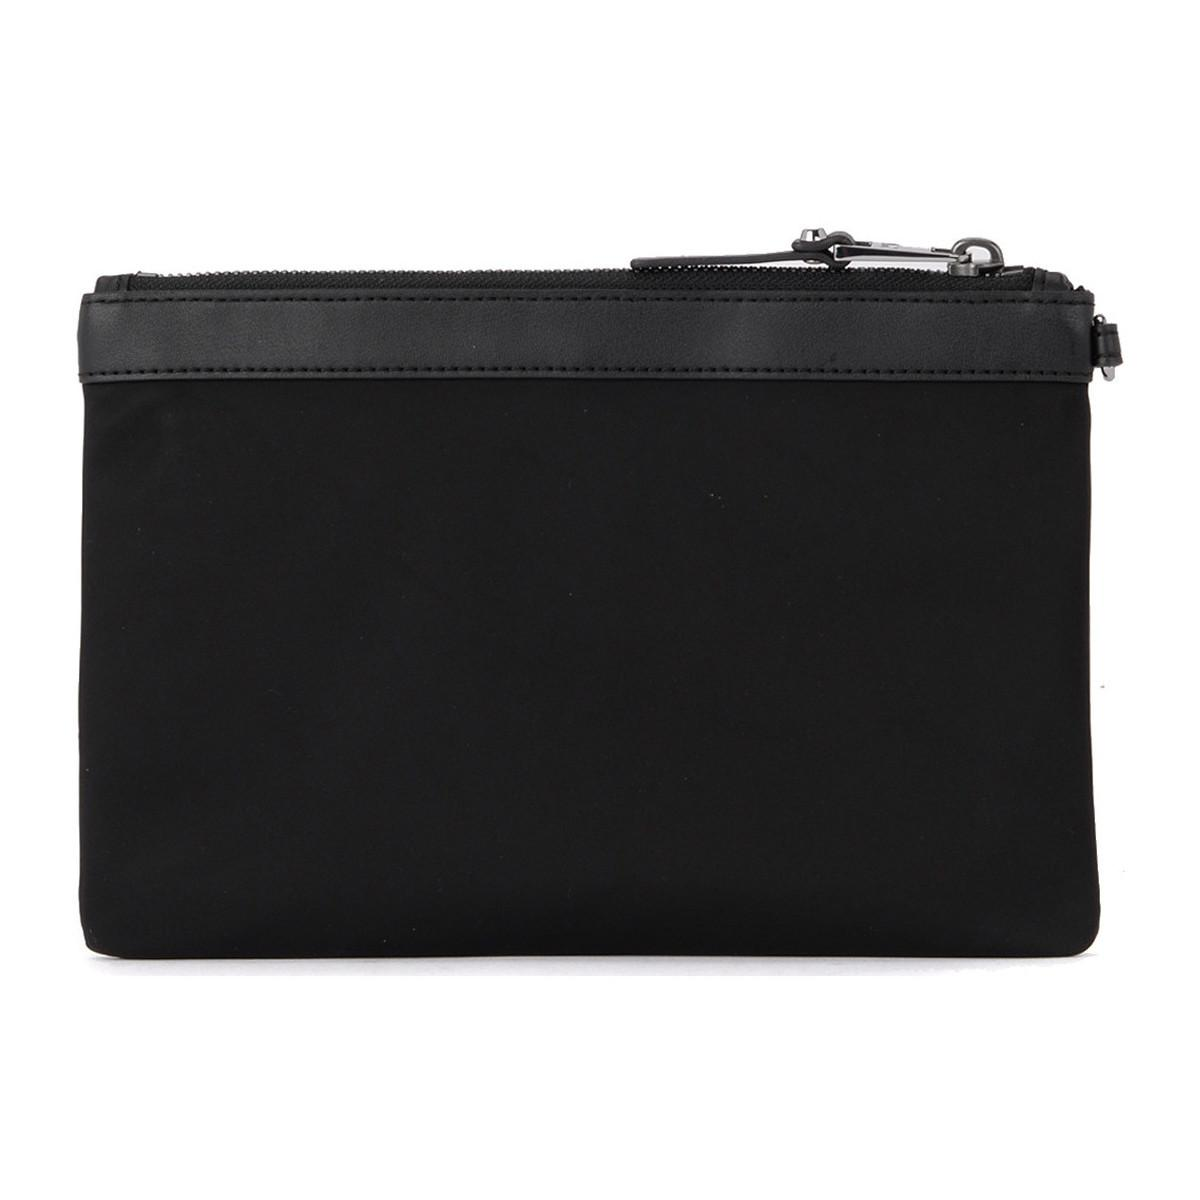 3e81bad20c91 MICHAEL Michael Kors - Lg Pouch Duo Black Nylon And Leather Double Pochette  Women's Pouch In. View fullscreen